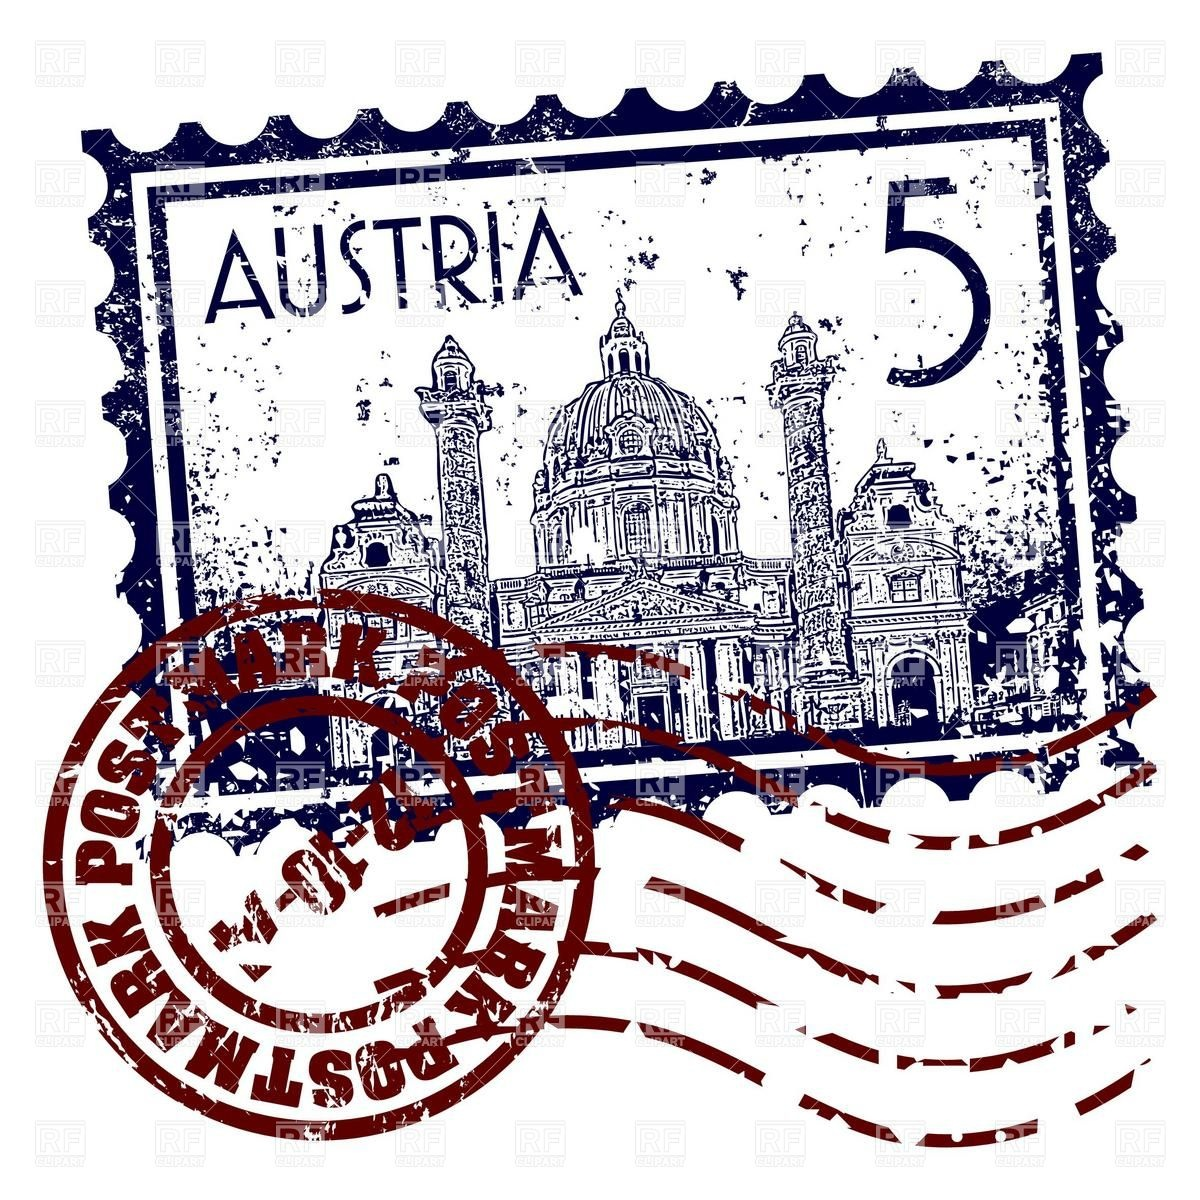 Austria clipart #5, Download drawings